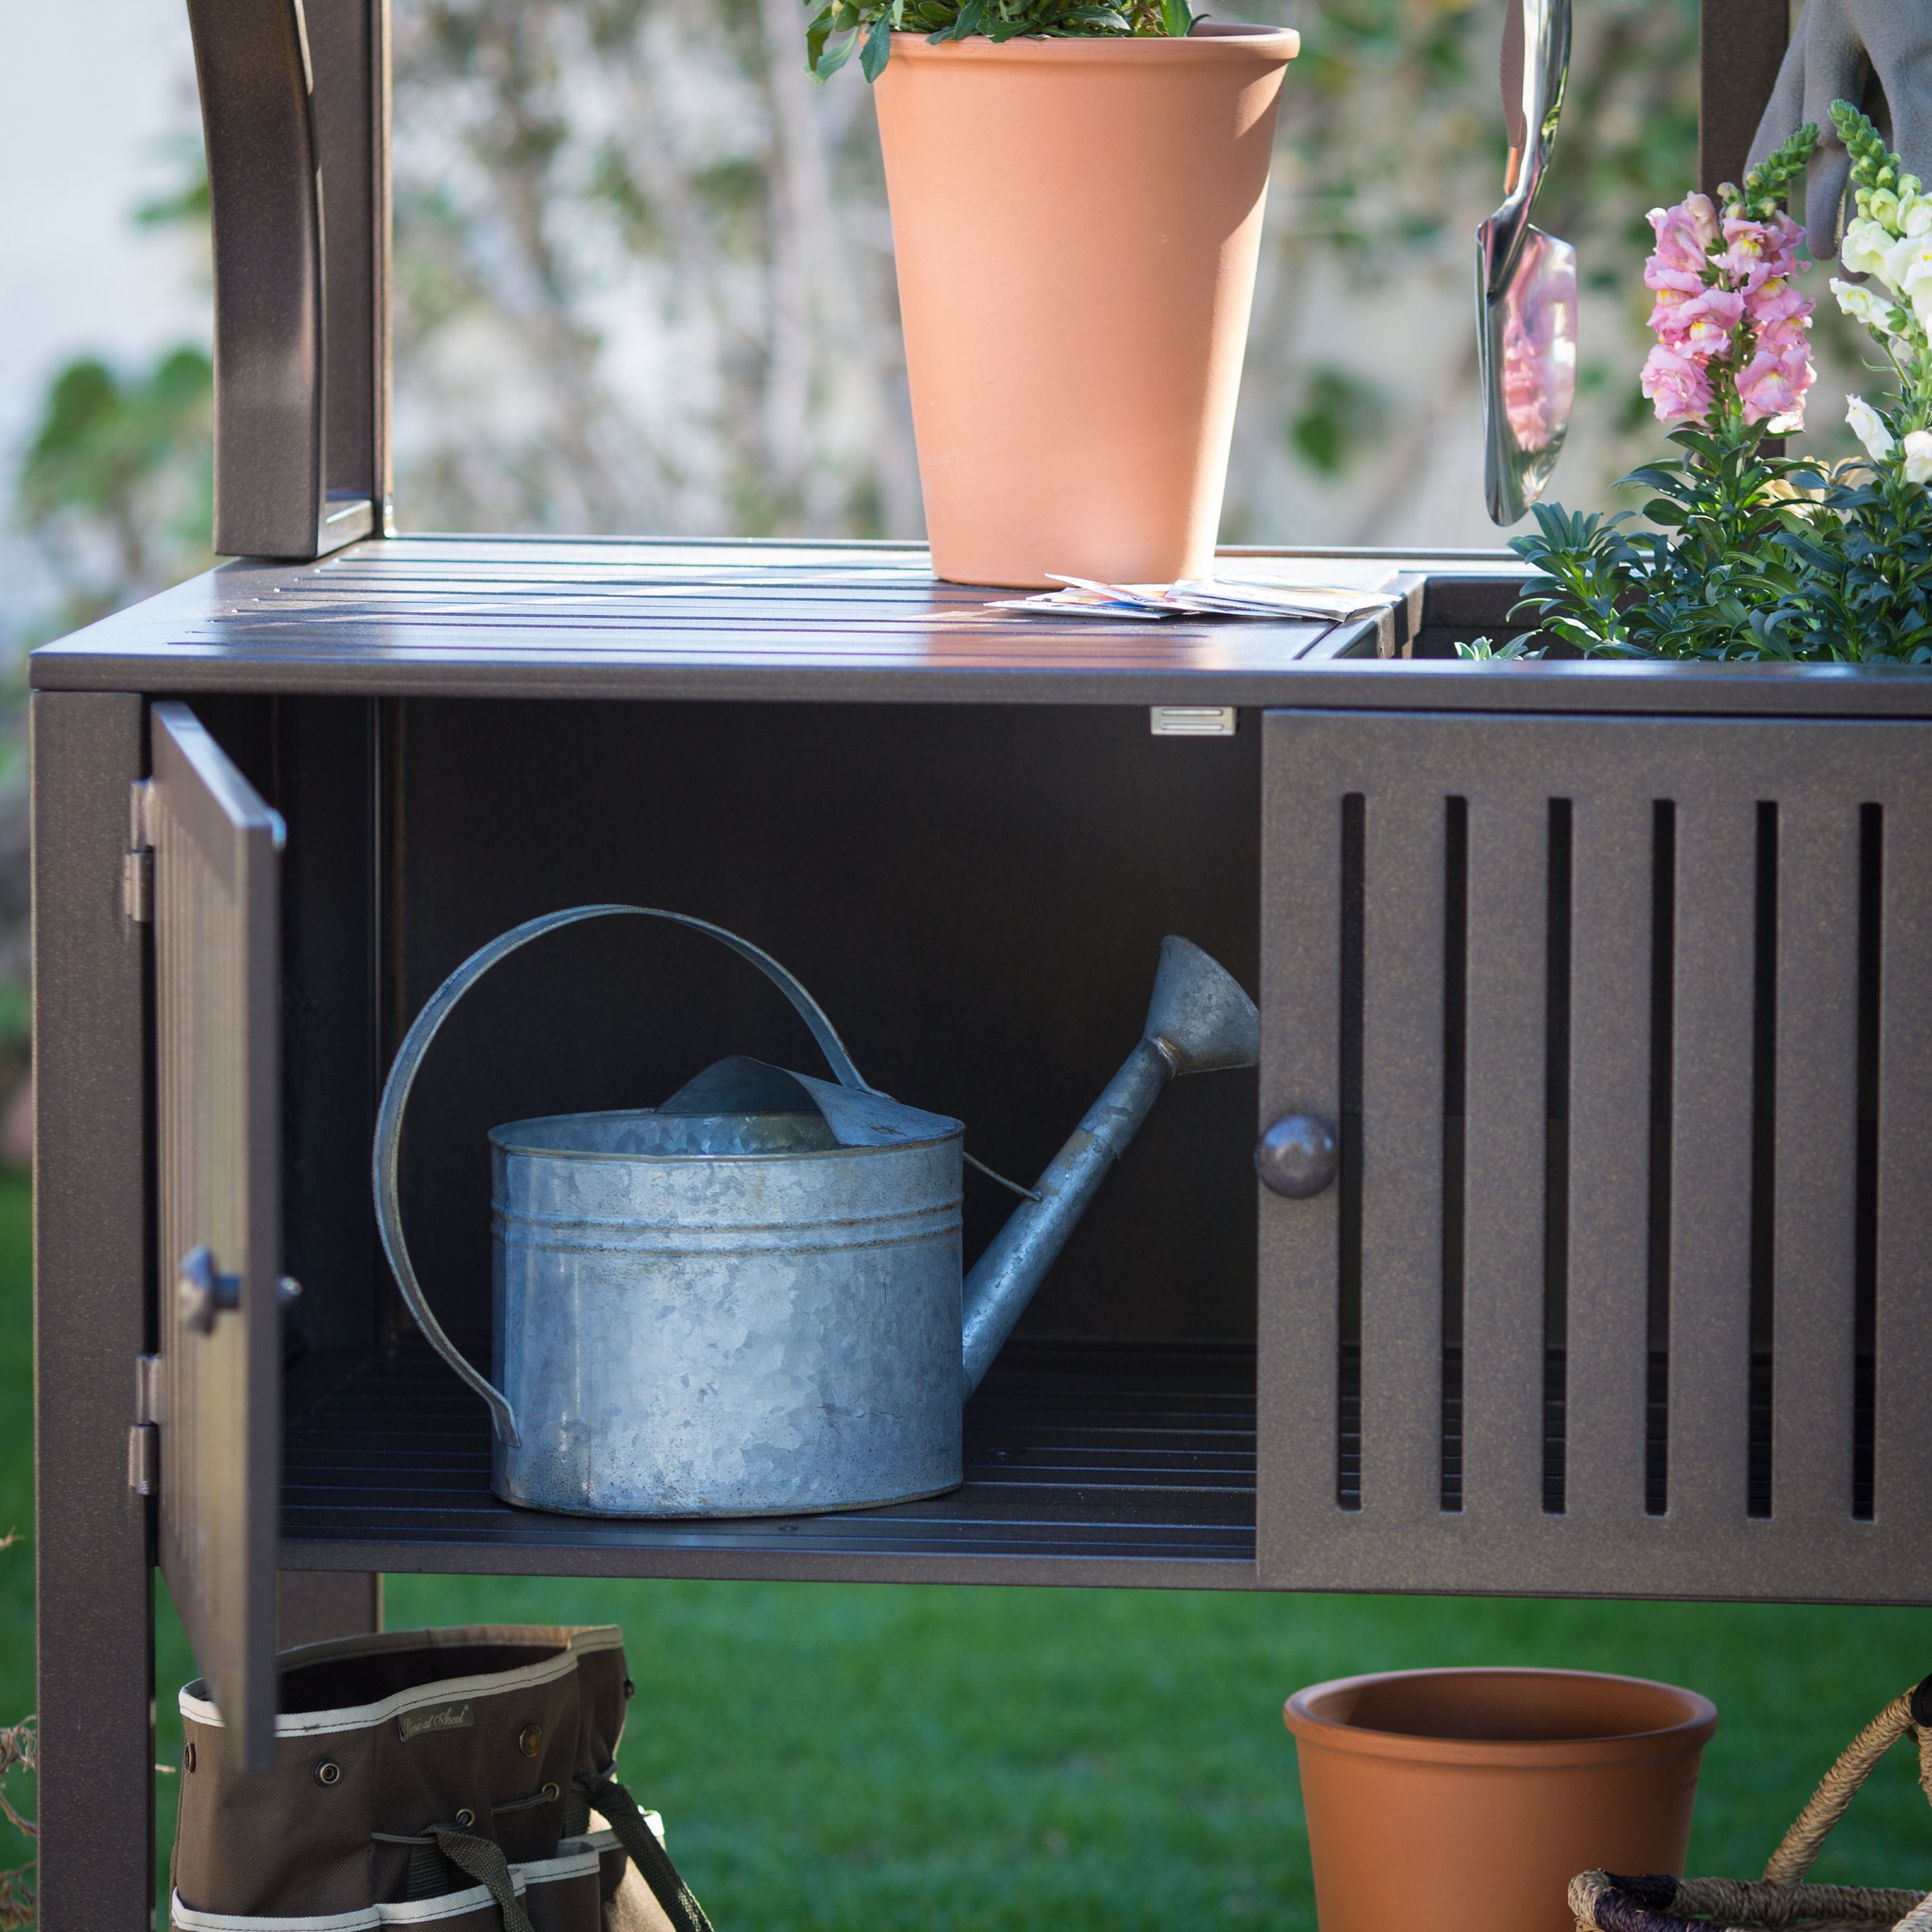 Contemporary Style, Modern Metal Chestnut Brown Finish Outdoor Potting Bench 42''W x 23''D x 72''H With Storage and 2 Slatted Shelves, 7 Hooks for Hanging Gardening Tools by Belham Living (Image #3)